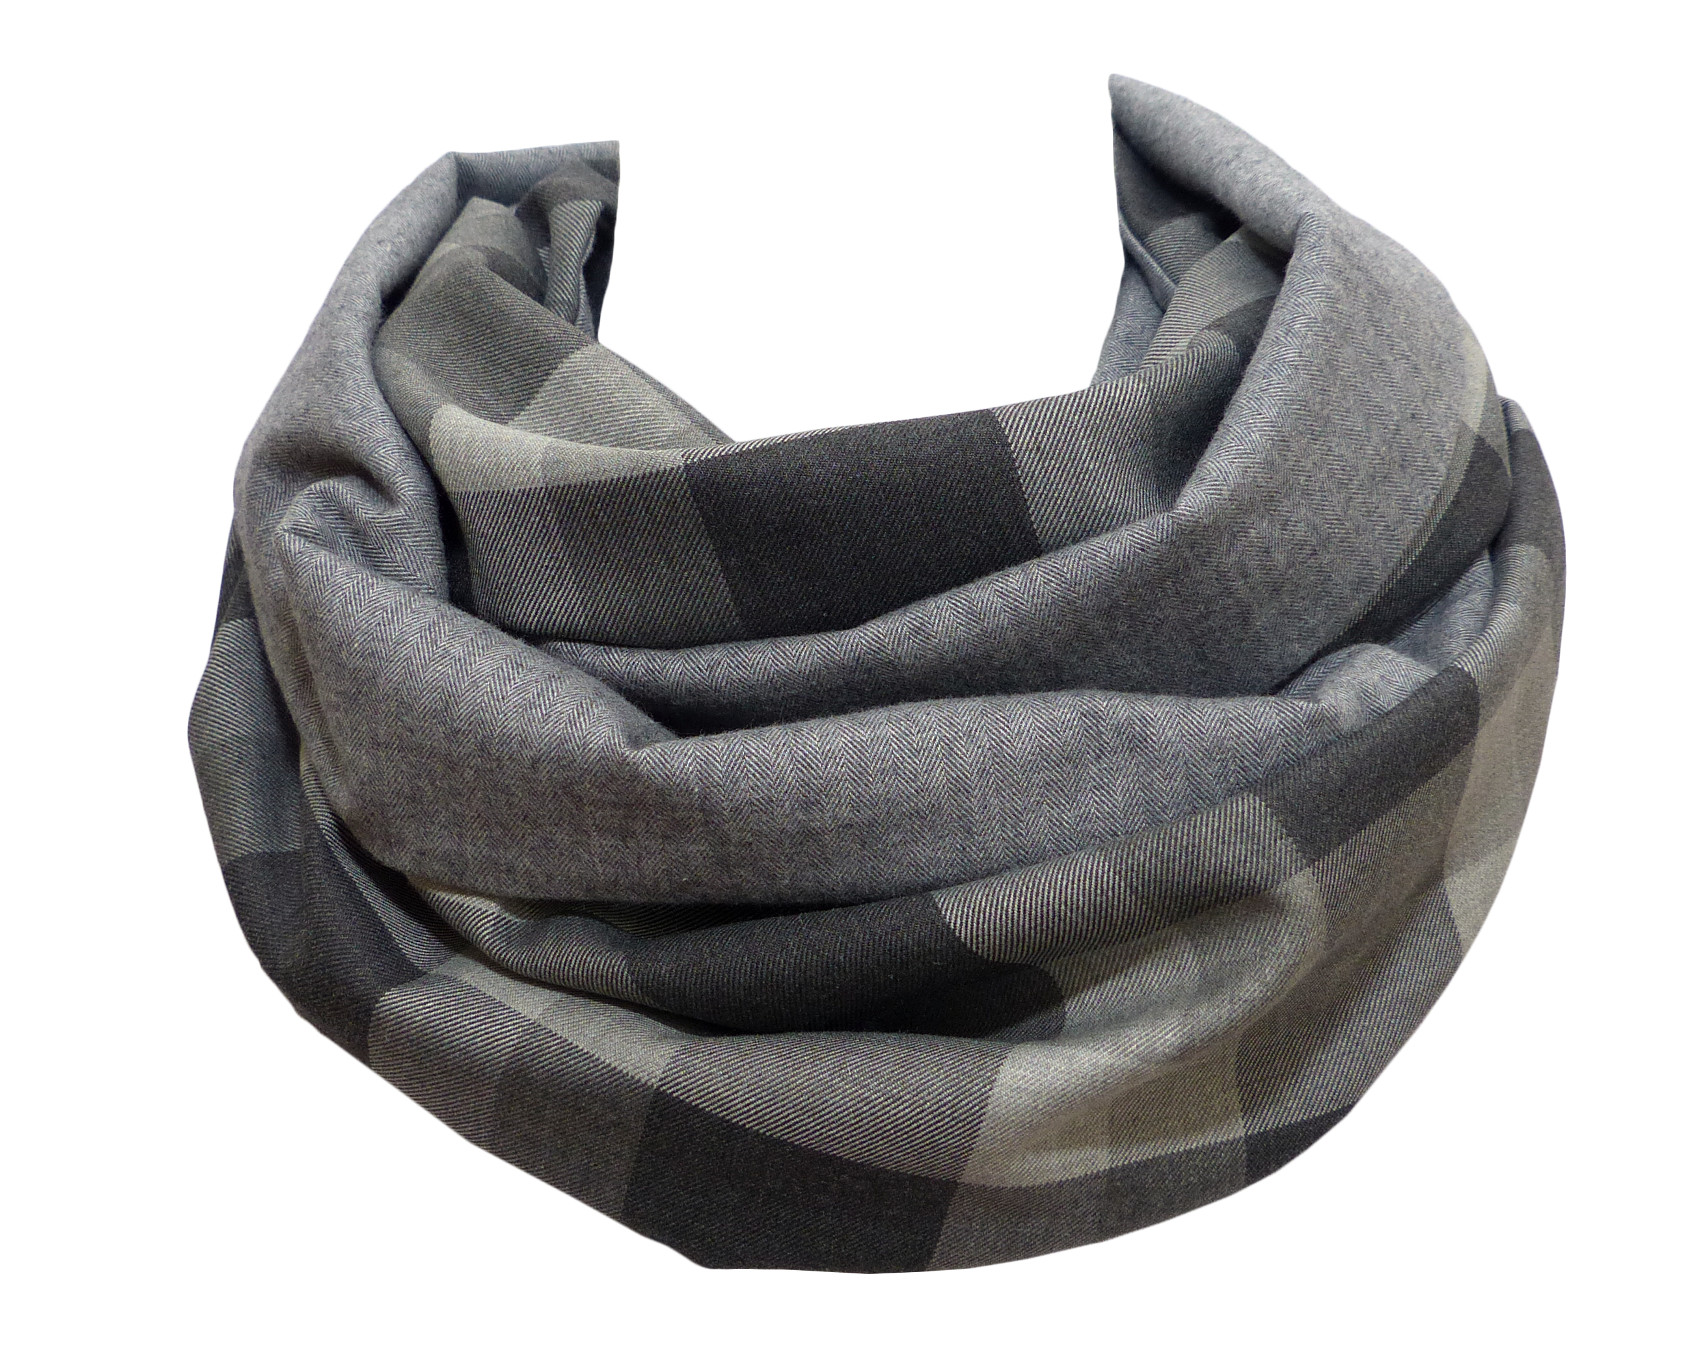 meilleur authentique grande collection de gros Echarpe Snood Grise, Laine et Coton, Uni et Carreaux